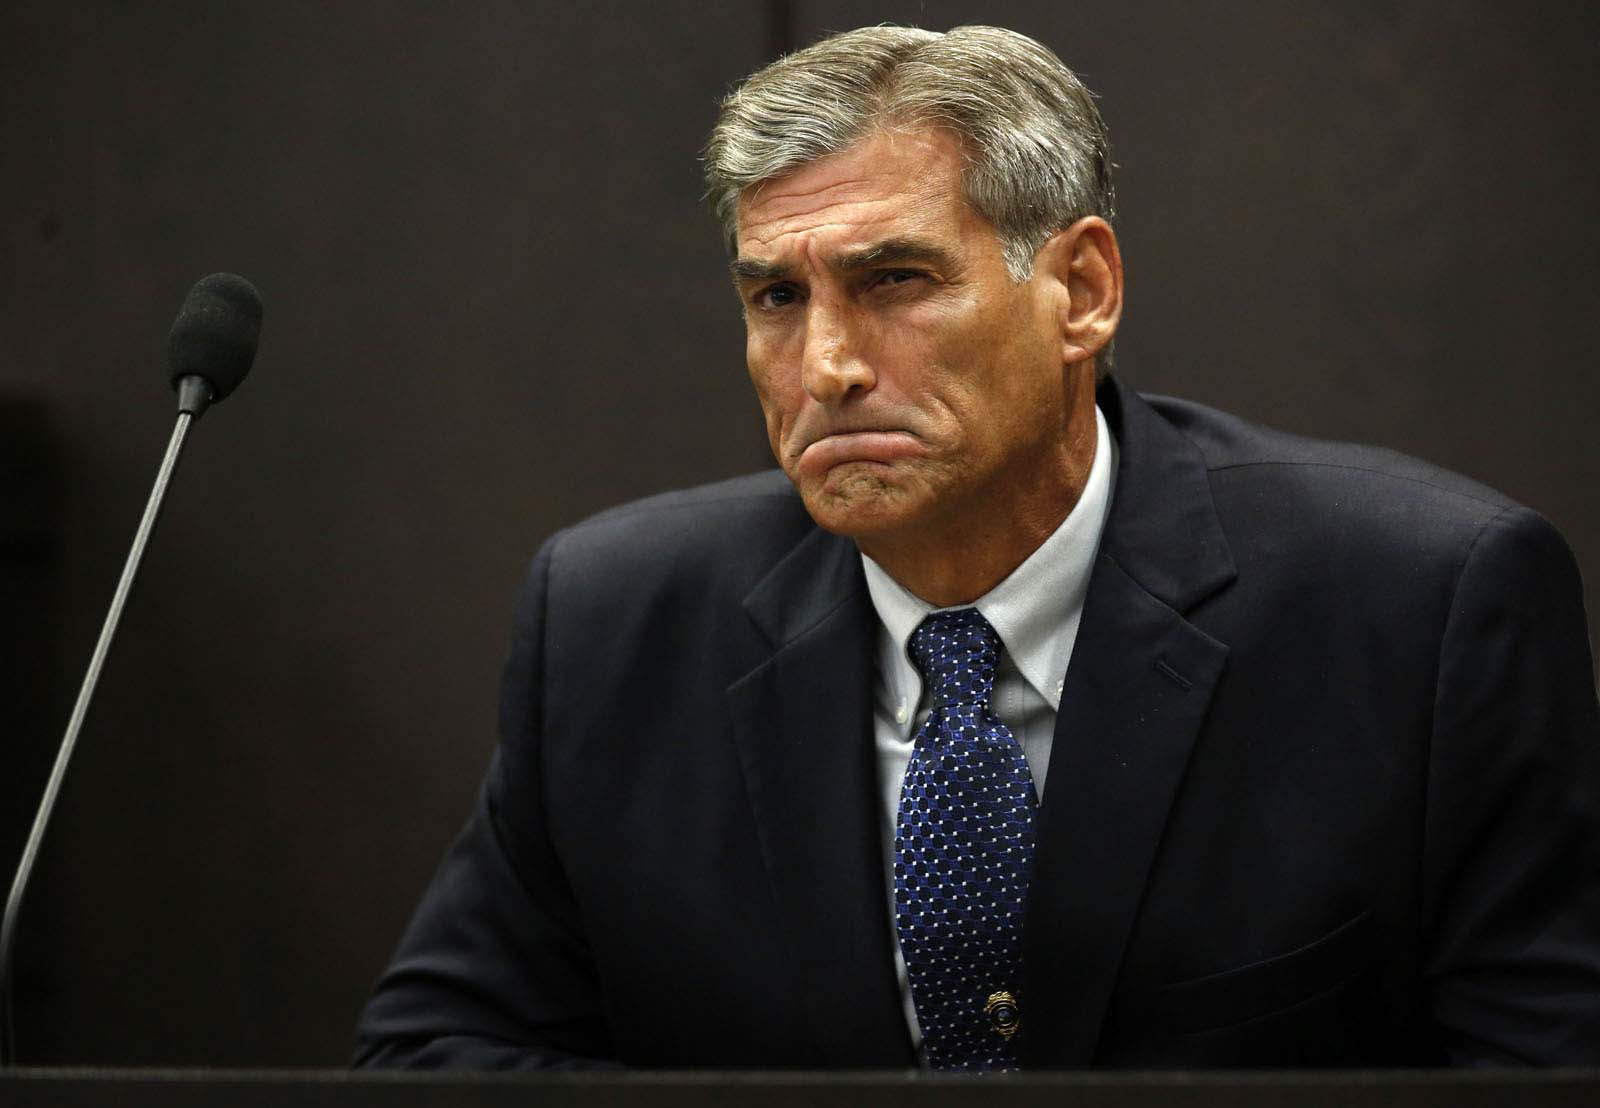 University Police Sgt. Steven Wilder is cross examined by defensive attorney Michael Ruppert during Pedro Bravo's murder trial in courtroom 1B of the Alachua County Criminal Justice Center Monday, August 11, 2014.  Bravo is accused of killing University of Florida student Christian Aguilar.  (Doug Finger/The Gainesville Sun/Pool)